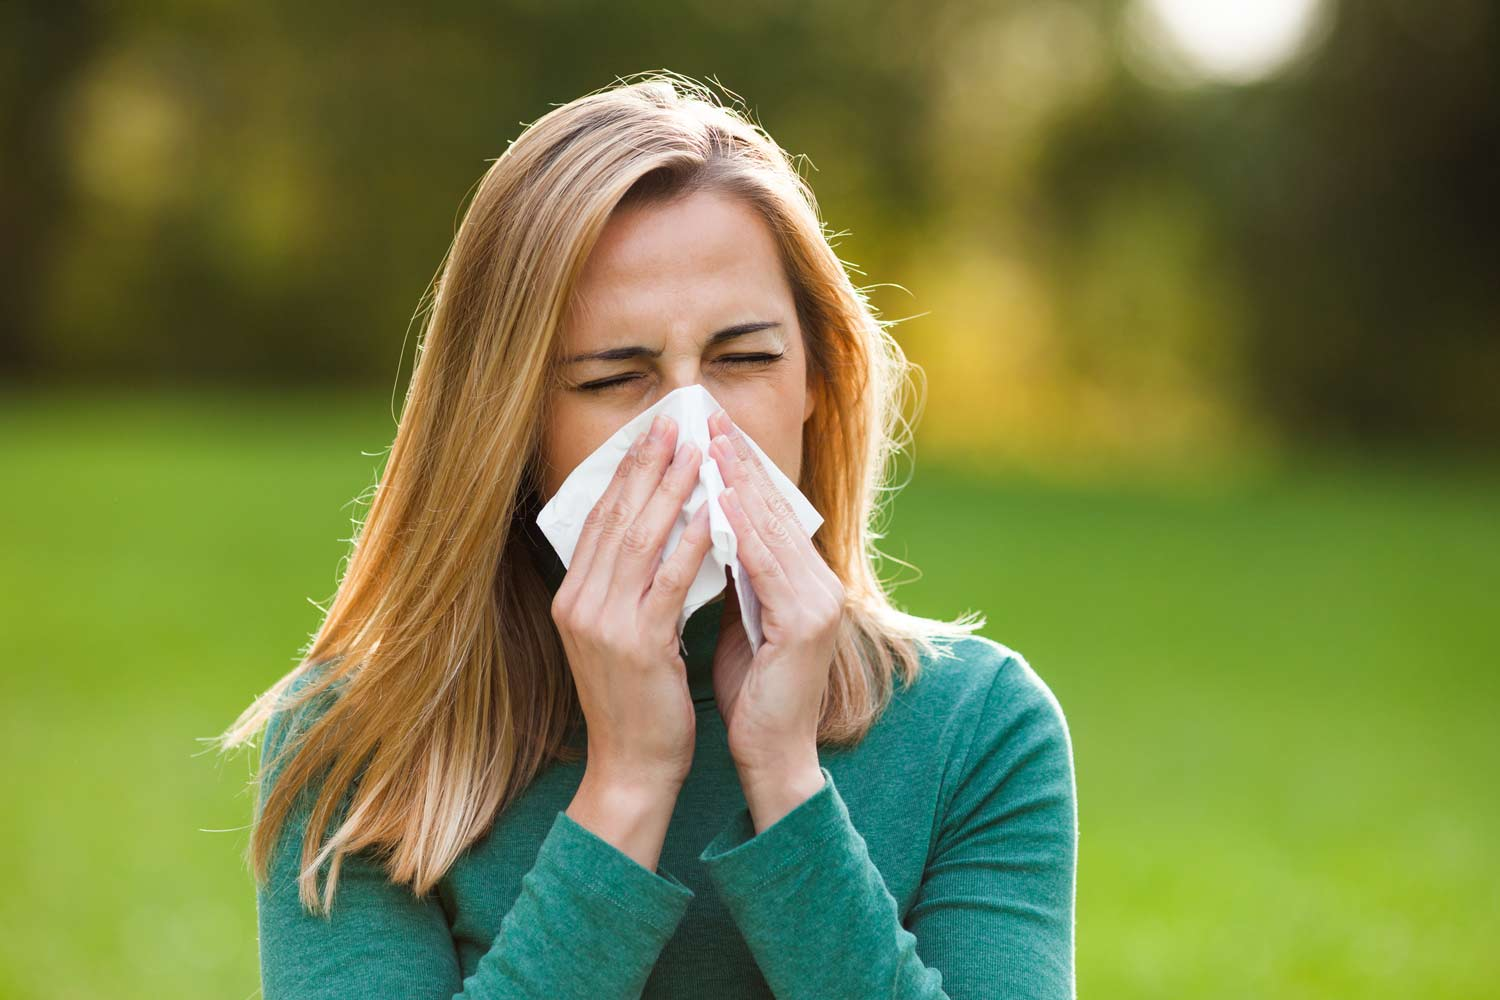 Allergy symptoms – unusual signs you may have an allergy